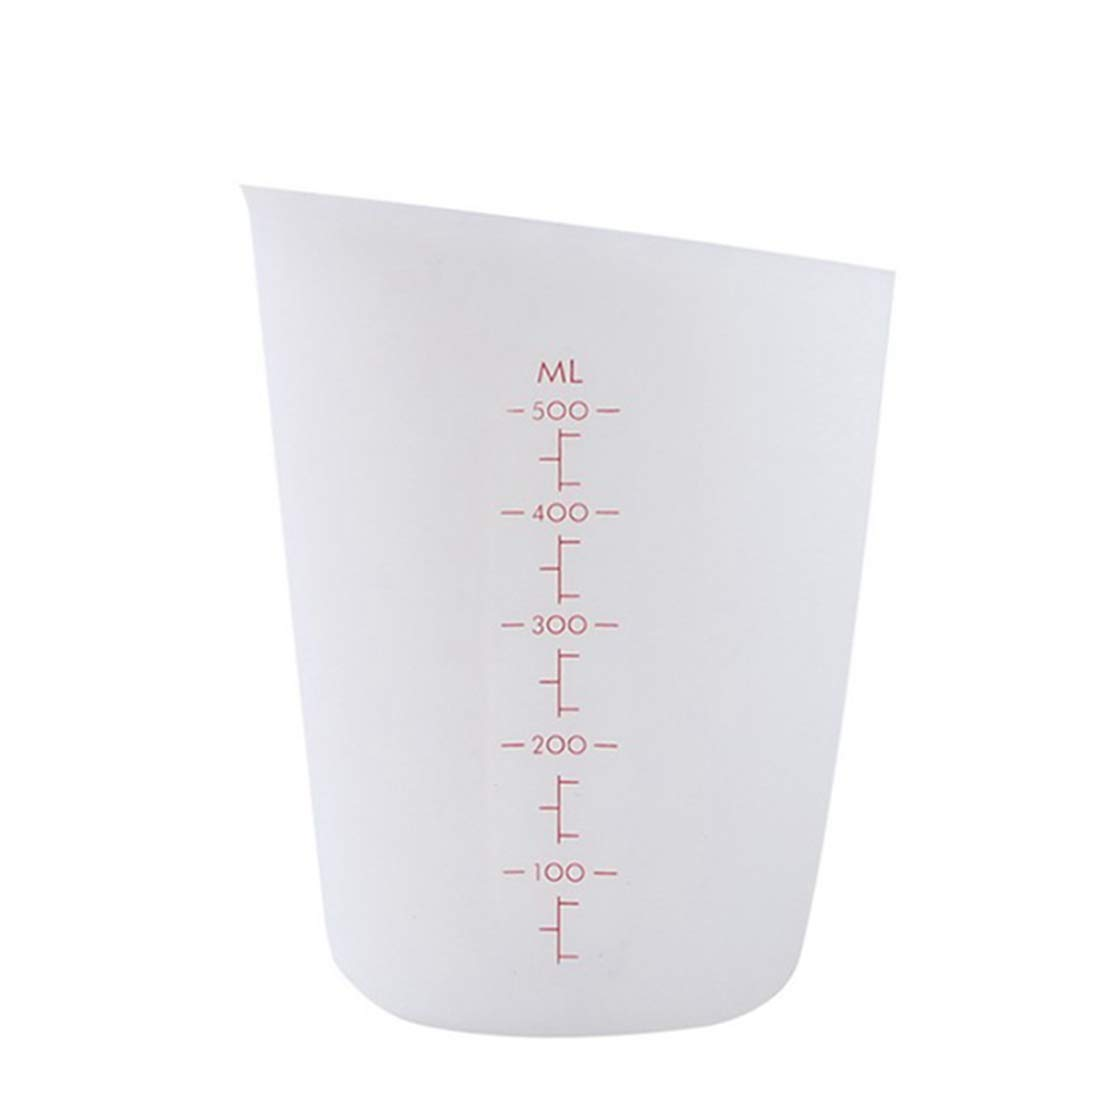 Cheap Cup Measurement Grams, find Cup Measurement Grams